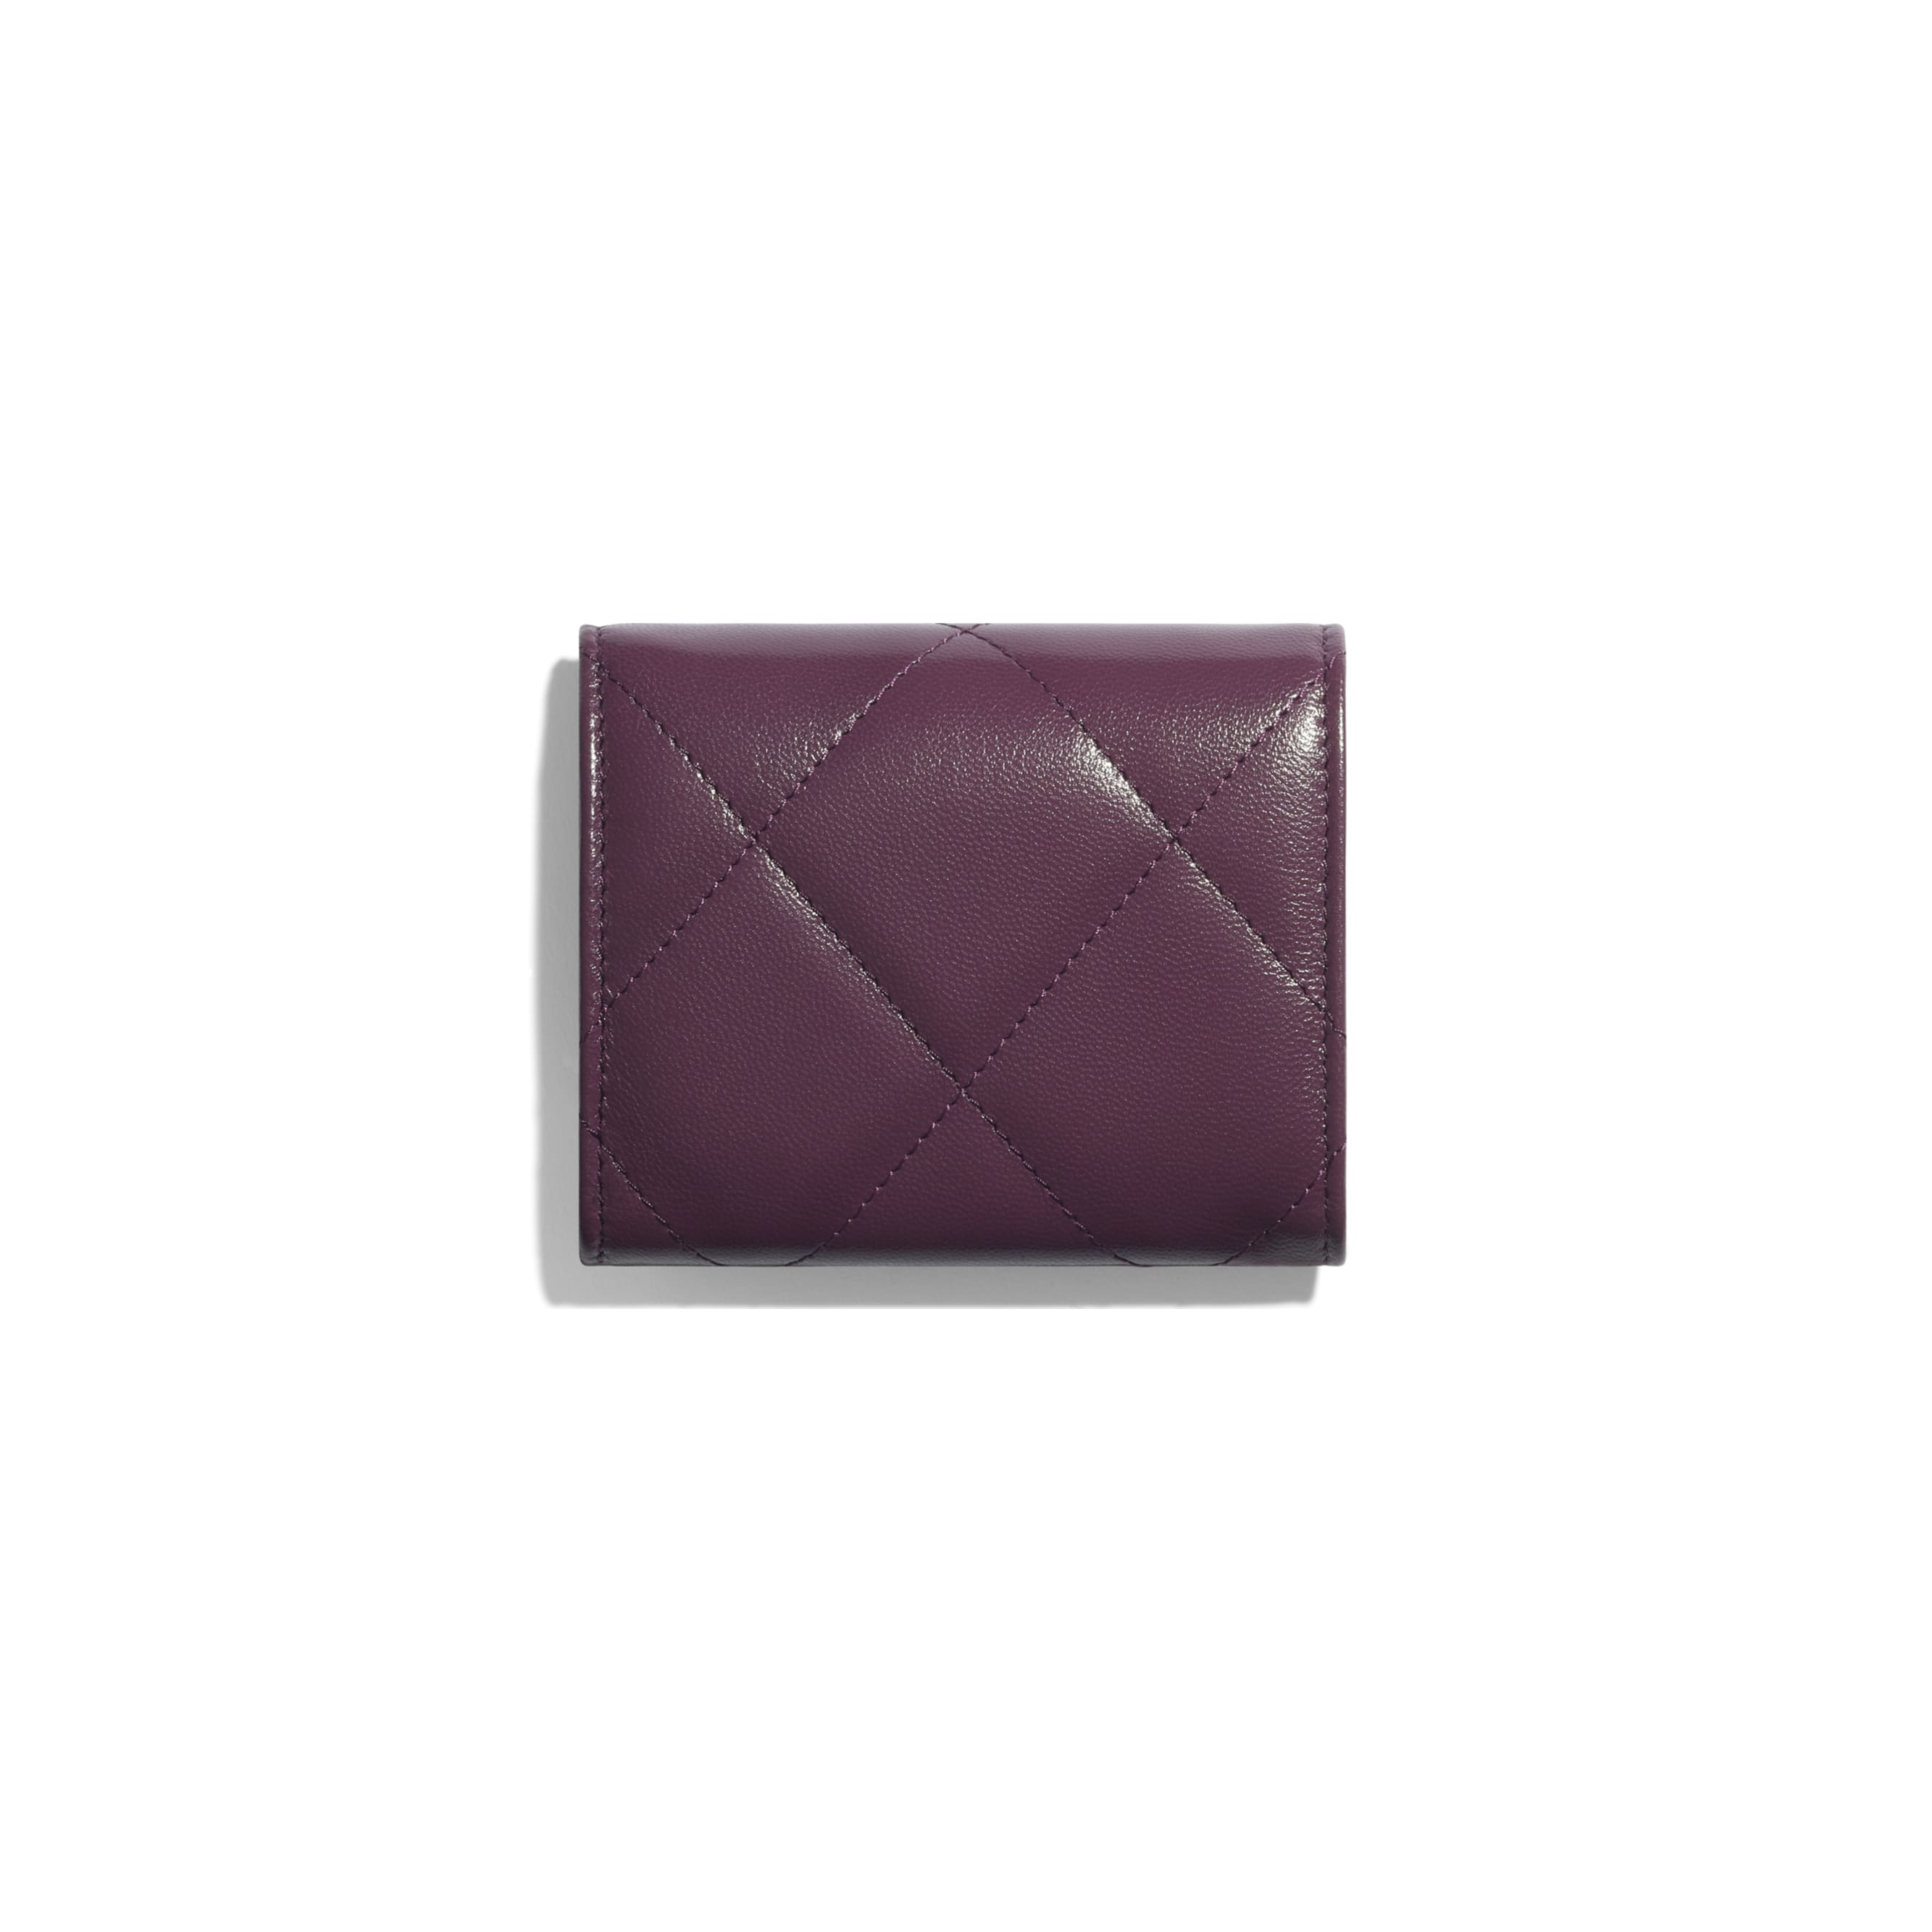 Small Flap Wallet - Purple - Shiny Goatskin & Gold-Tone Metal - CHANEL - Alternative view - see standard sized version